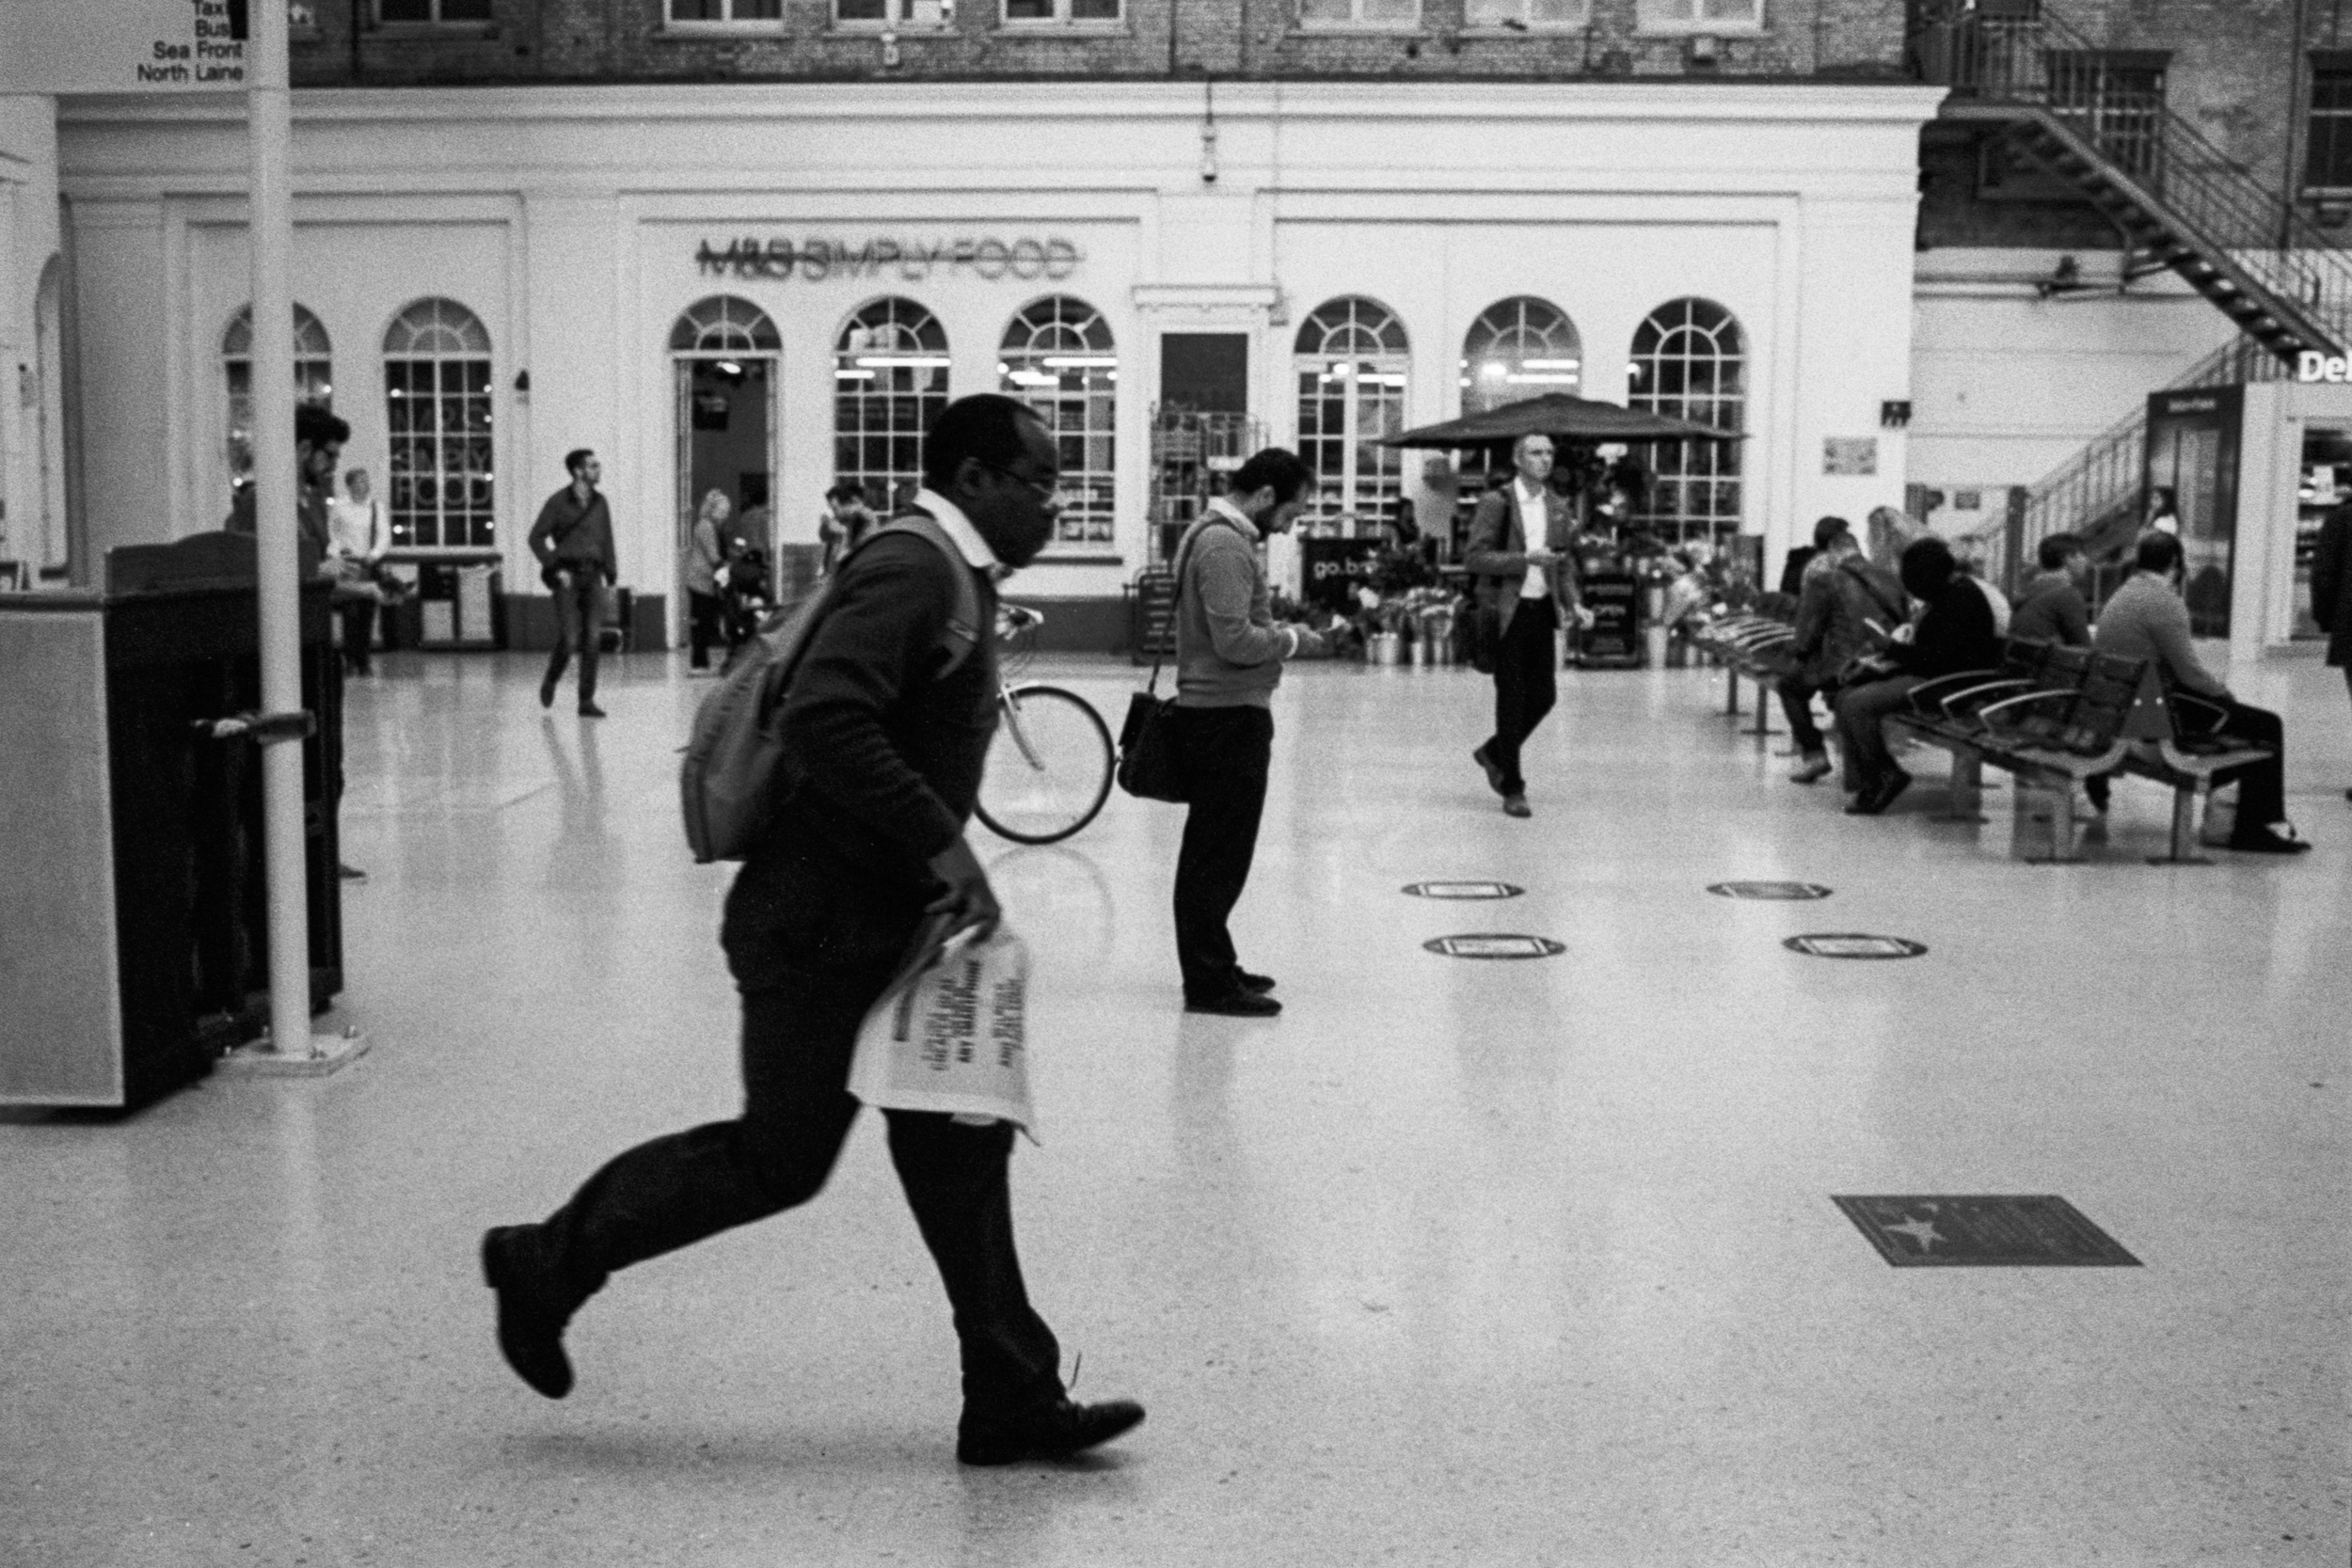 At Brighton station early in the morning. A man runs for the train clutching a newspaper. In the background people sit and wait, watching the train departure boards. A man carrying a black laptop bag looks engrossed in his phone.